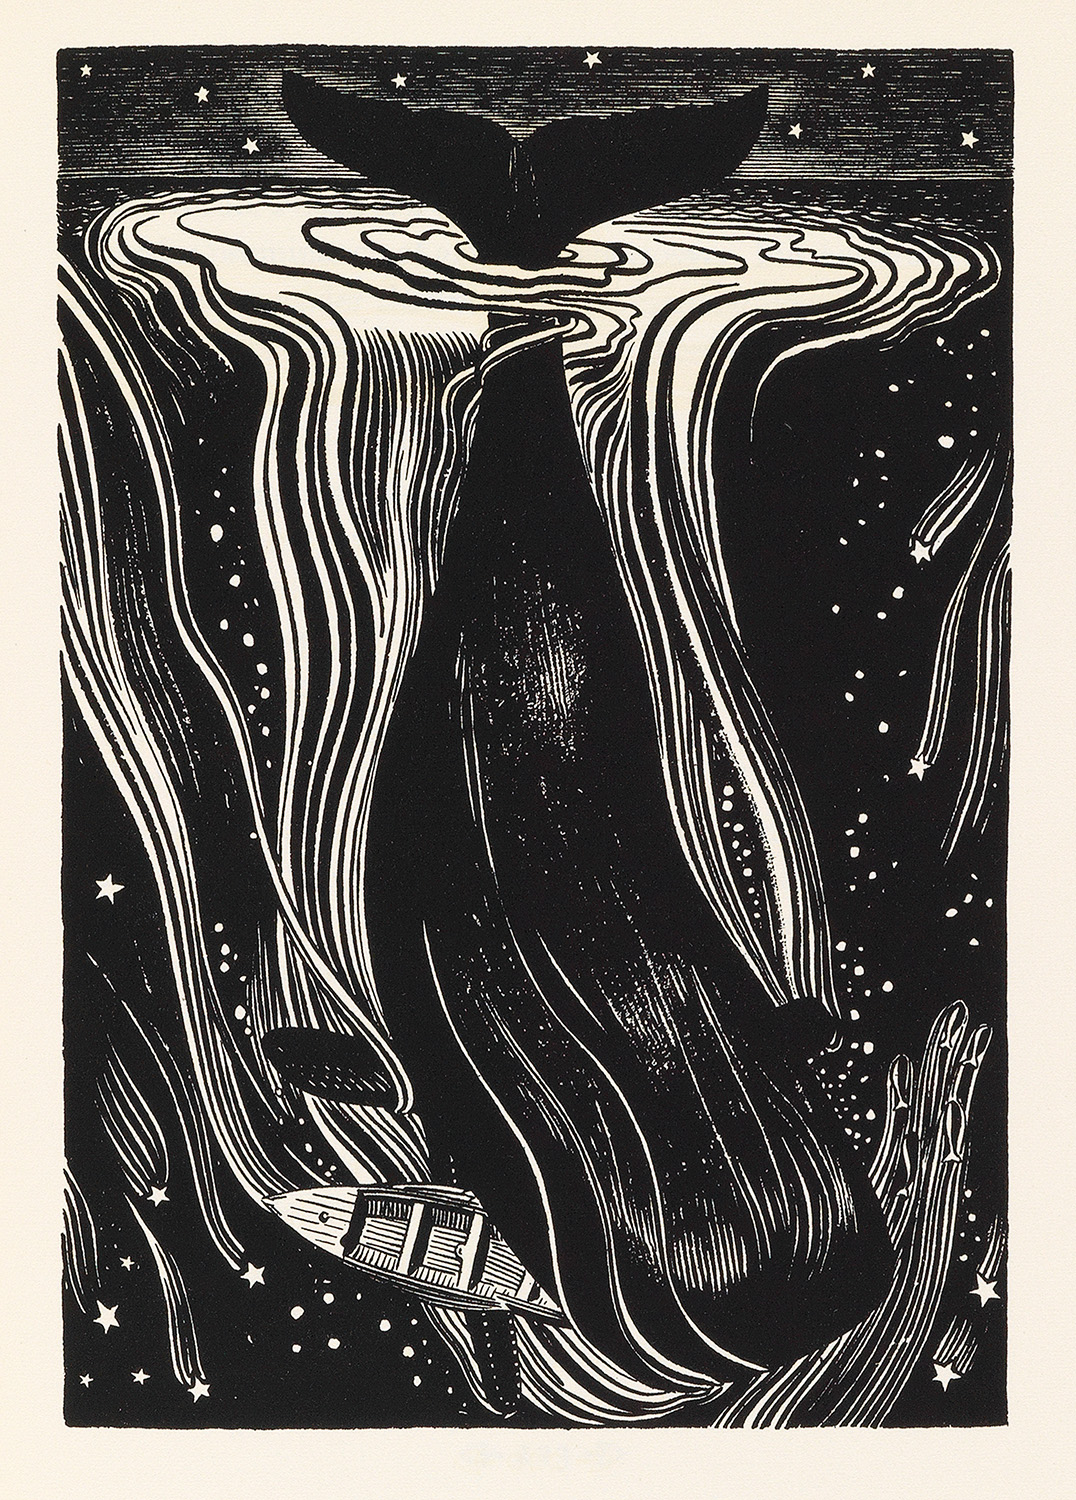 One of the 280 pen-and-ink illustrations that Rockwell Kent did for a three-volume 1930 limited edition release of Moby Dick. This particular copy lacks its aluminum slipcase.